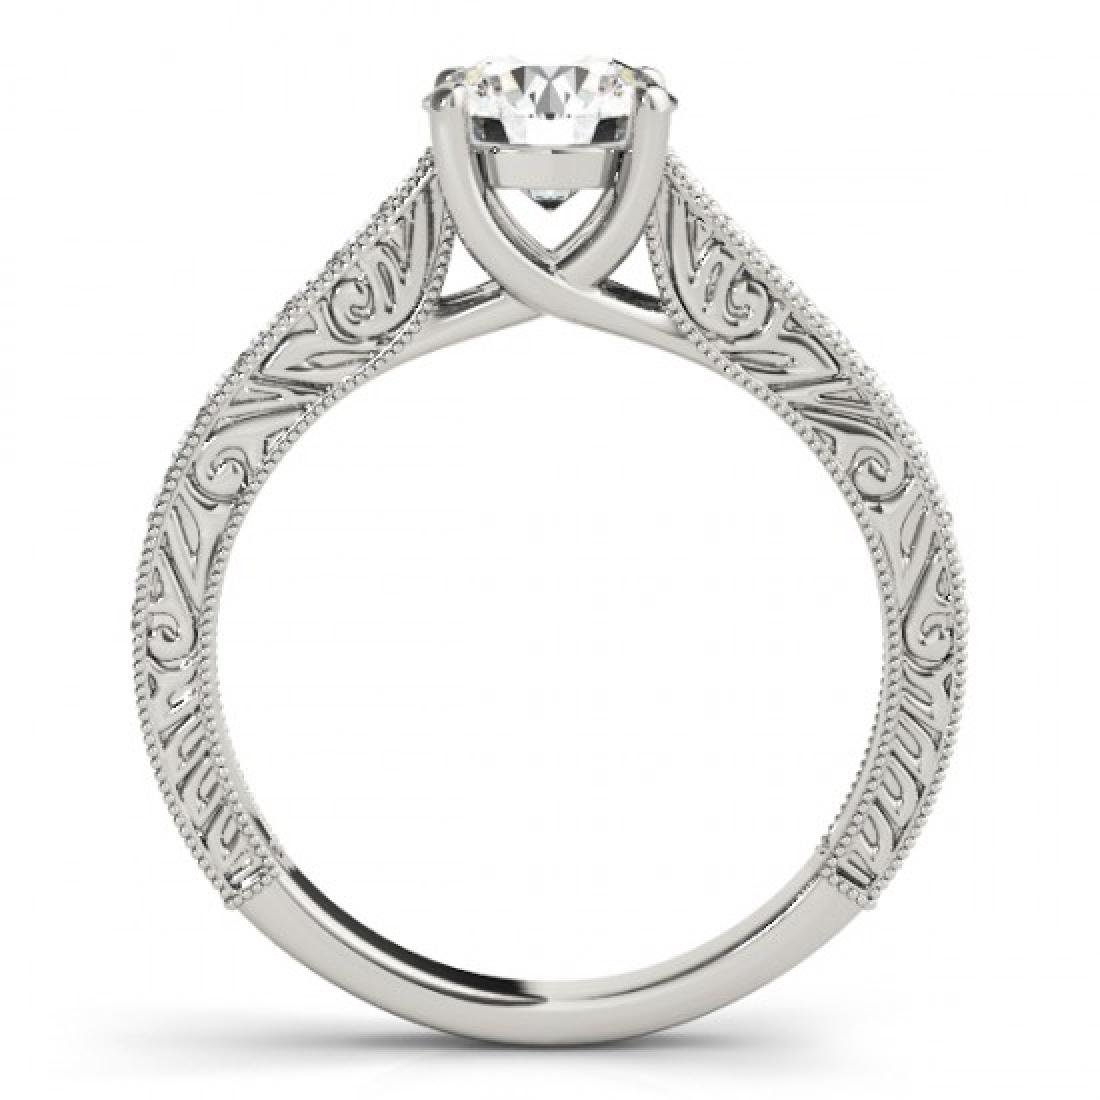 1.32 CTW Certified VS/SI Diamond Solitaire Ring 14K - 2